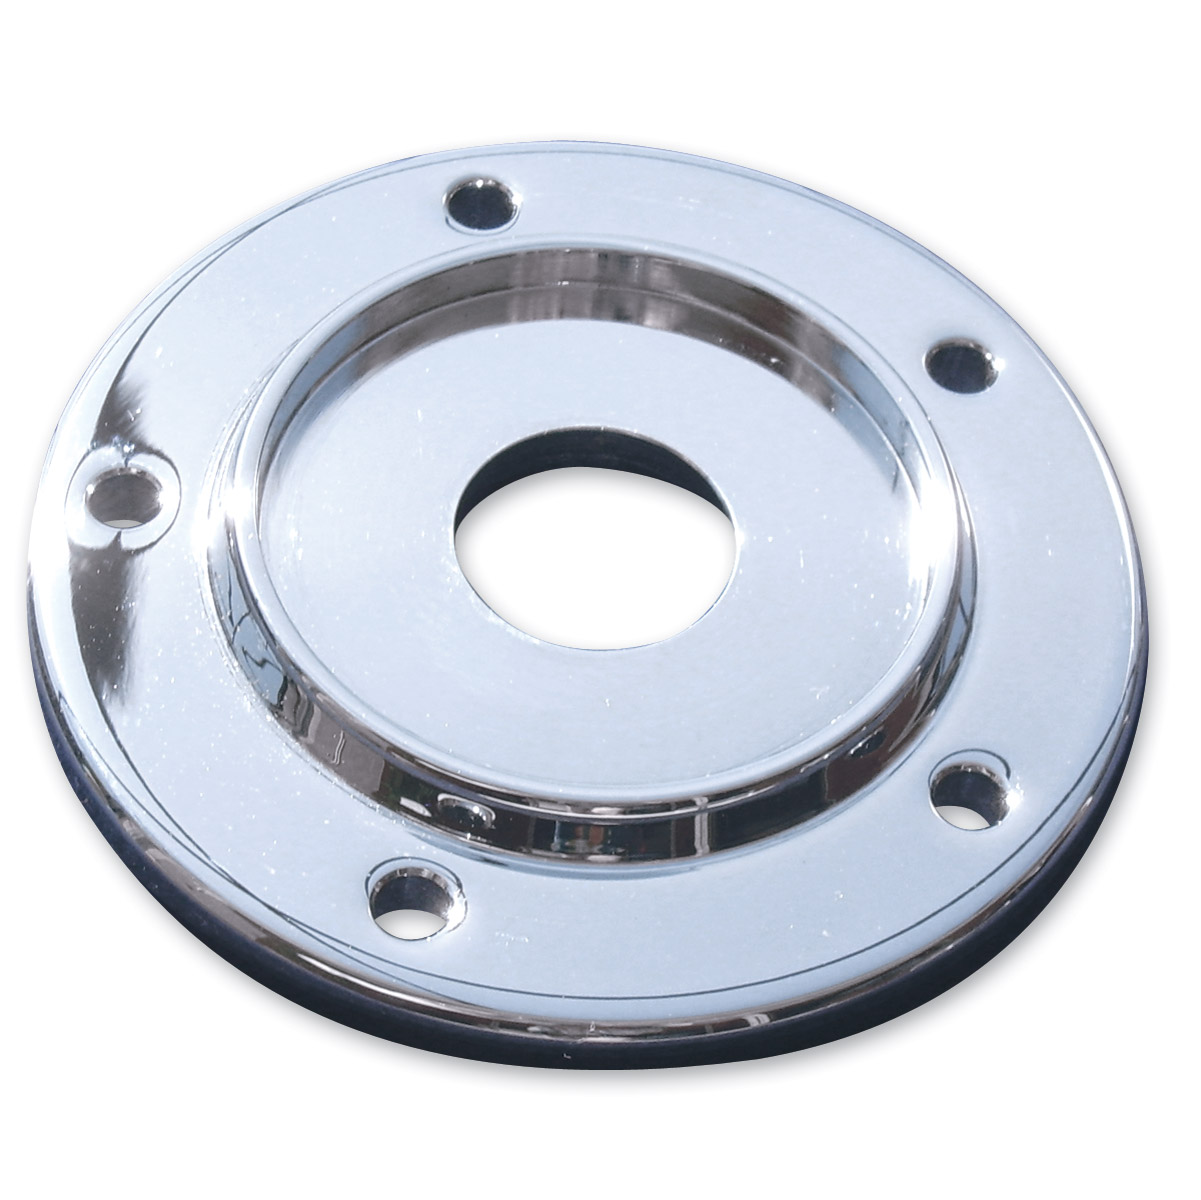 Motordog69 Medallion 5-Hole Mounting Plate for Twin Cam